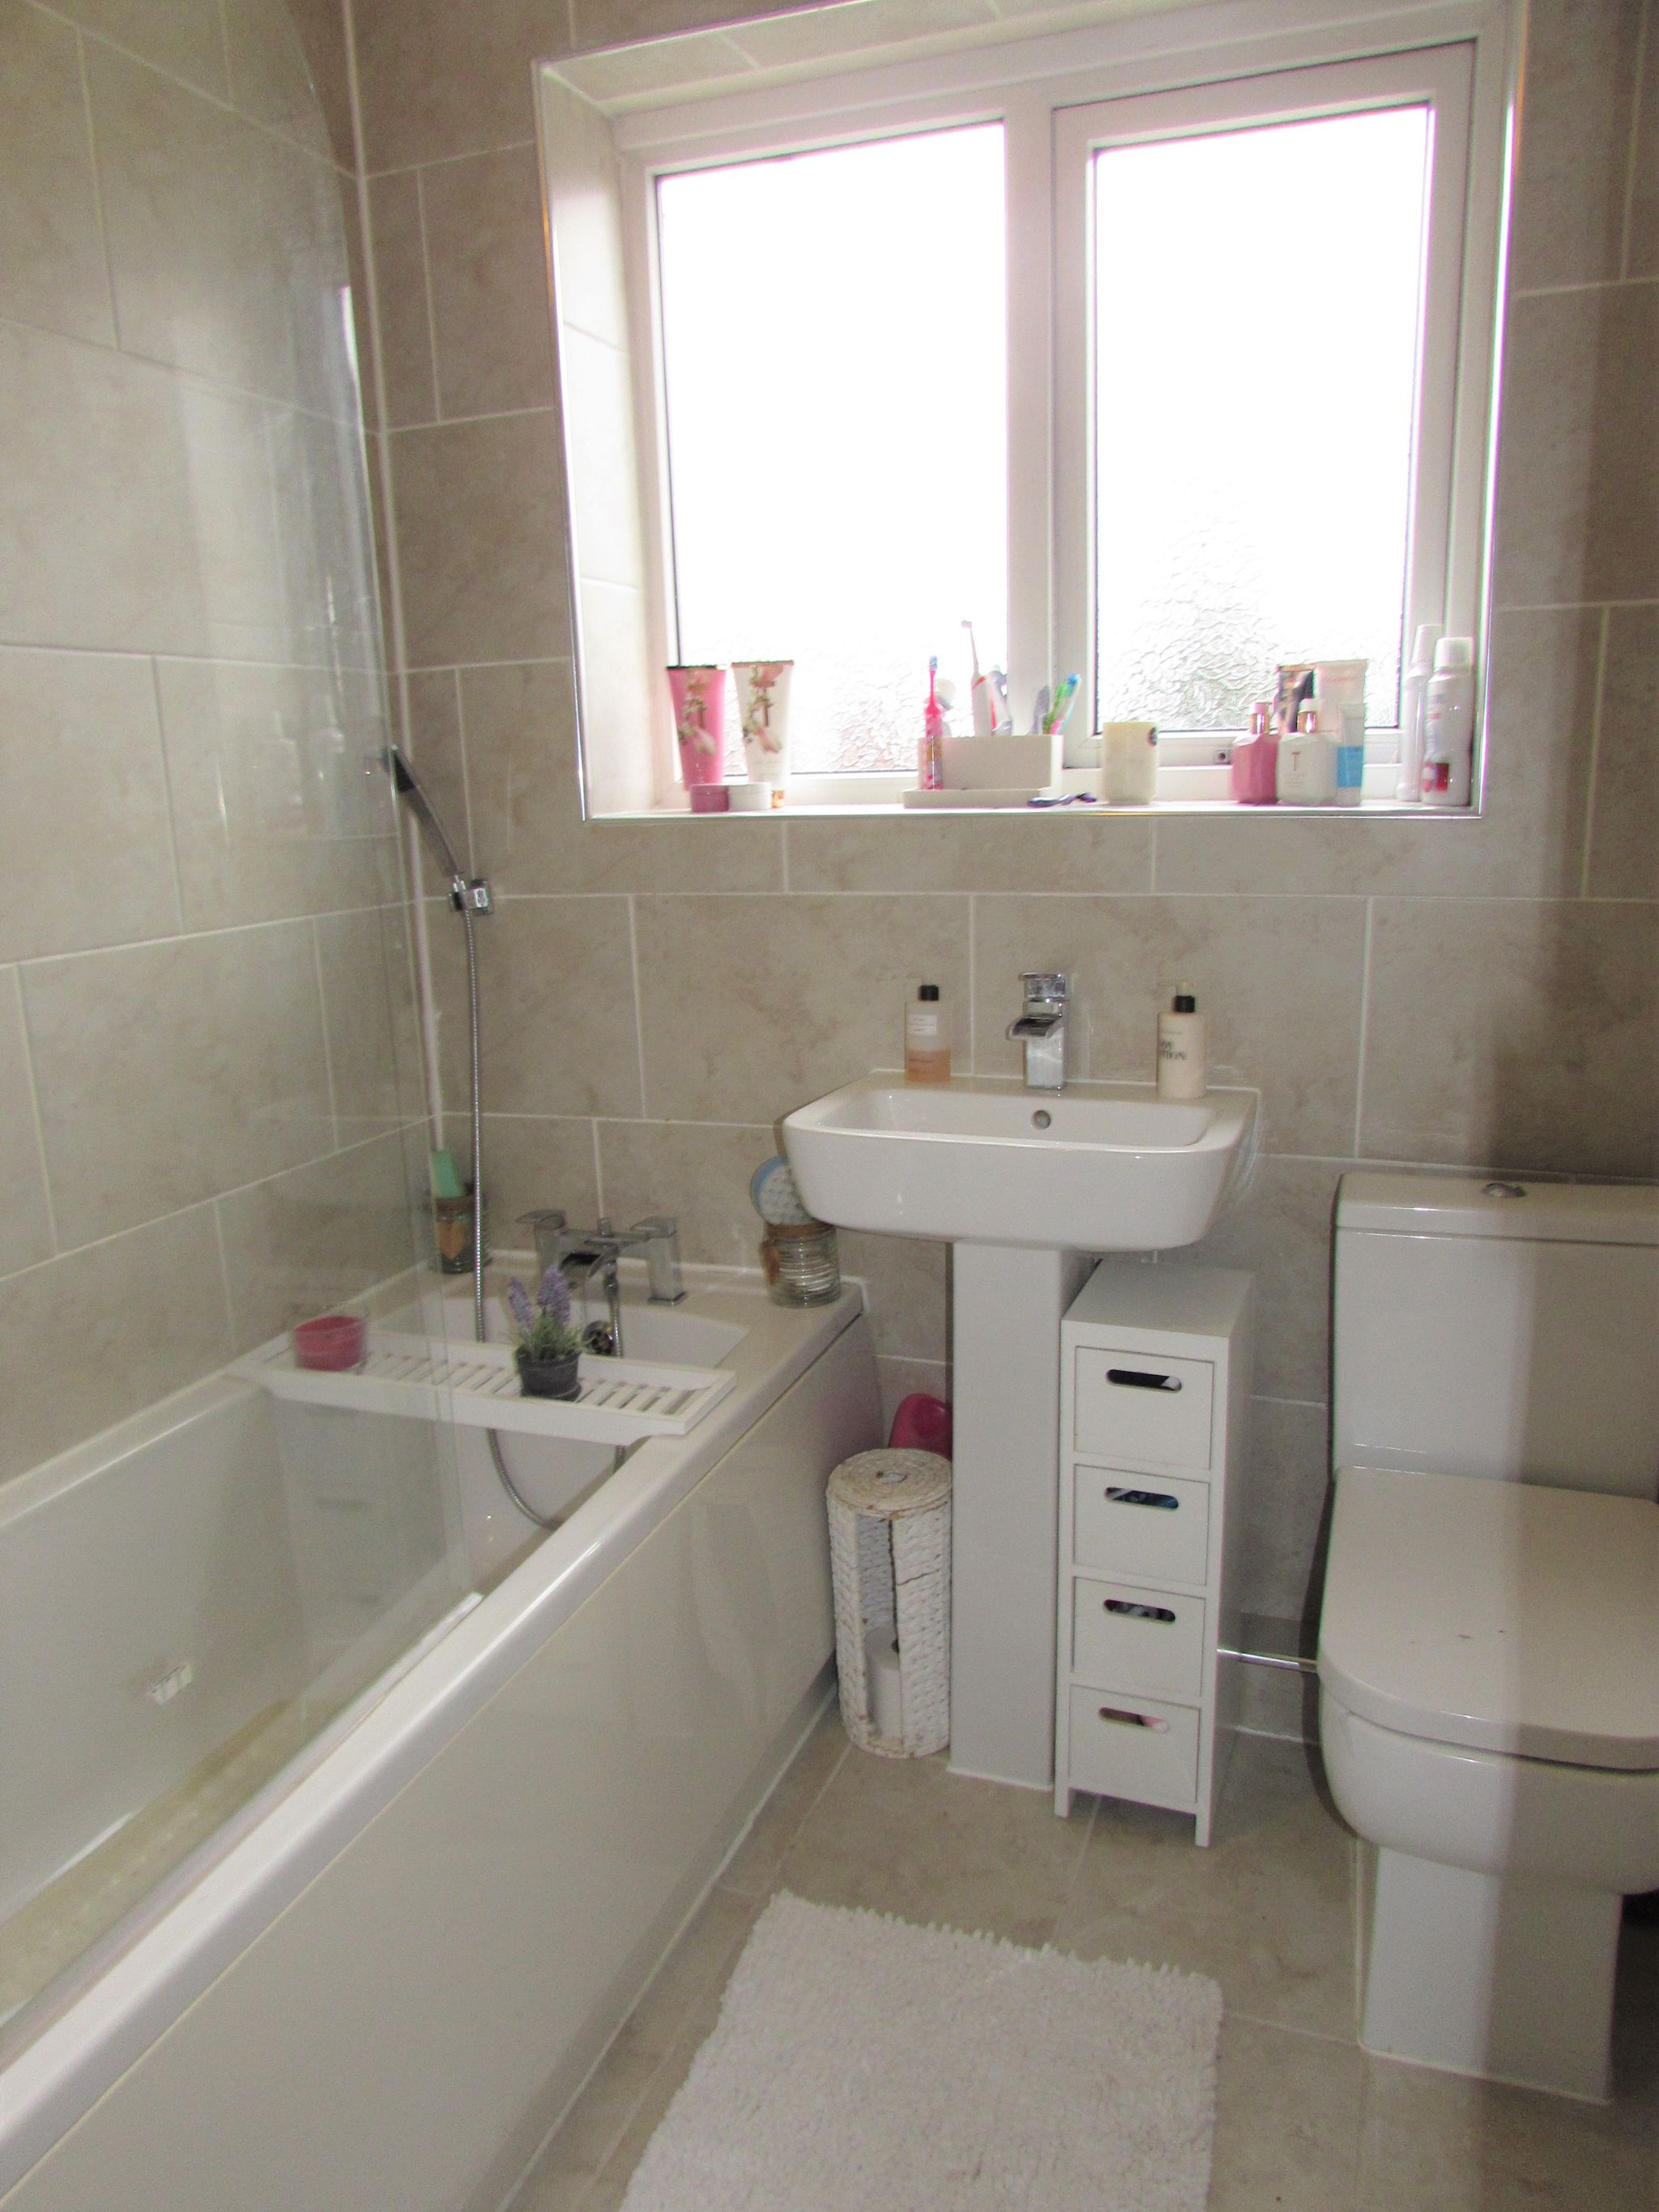 3 Bedroom Semi-detached House For Sale - Family Bathroom